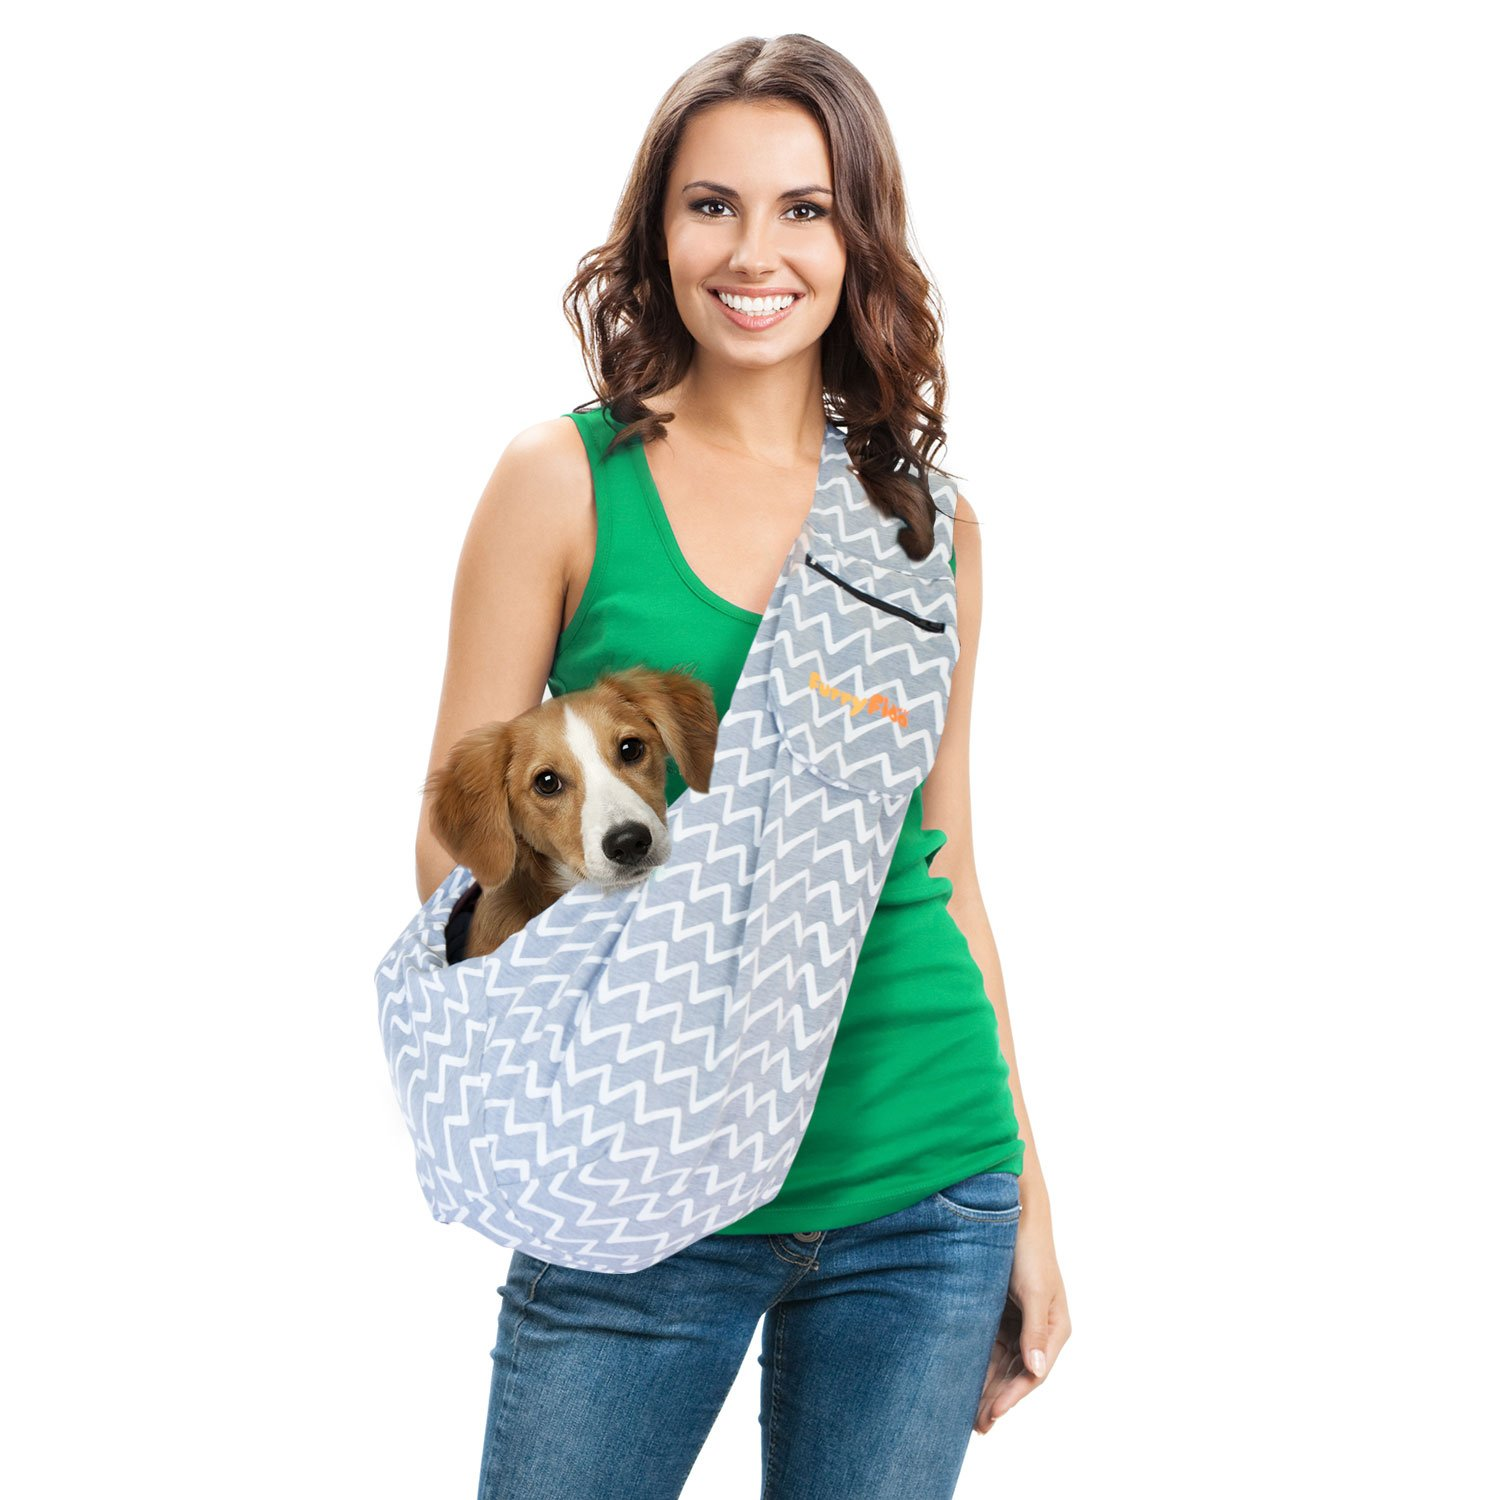 FurryFido Adjustable Pet Sling/dog cat sling Carrier For Cats Dogs Bunny, grey